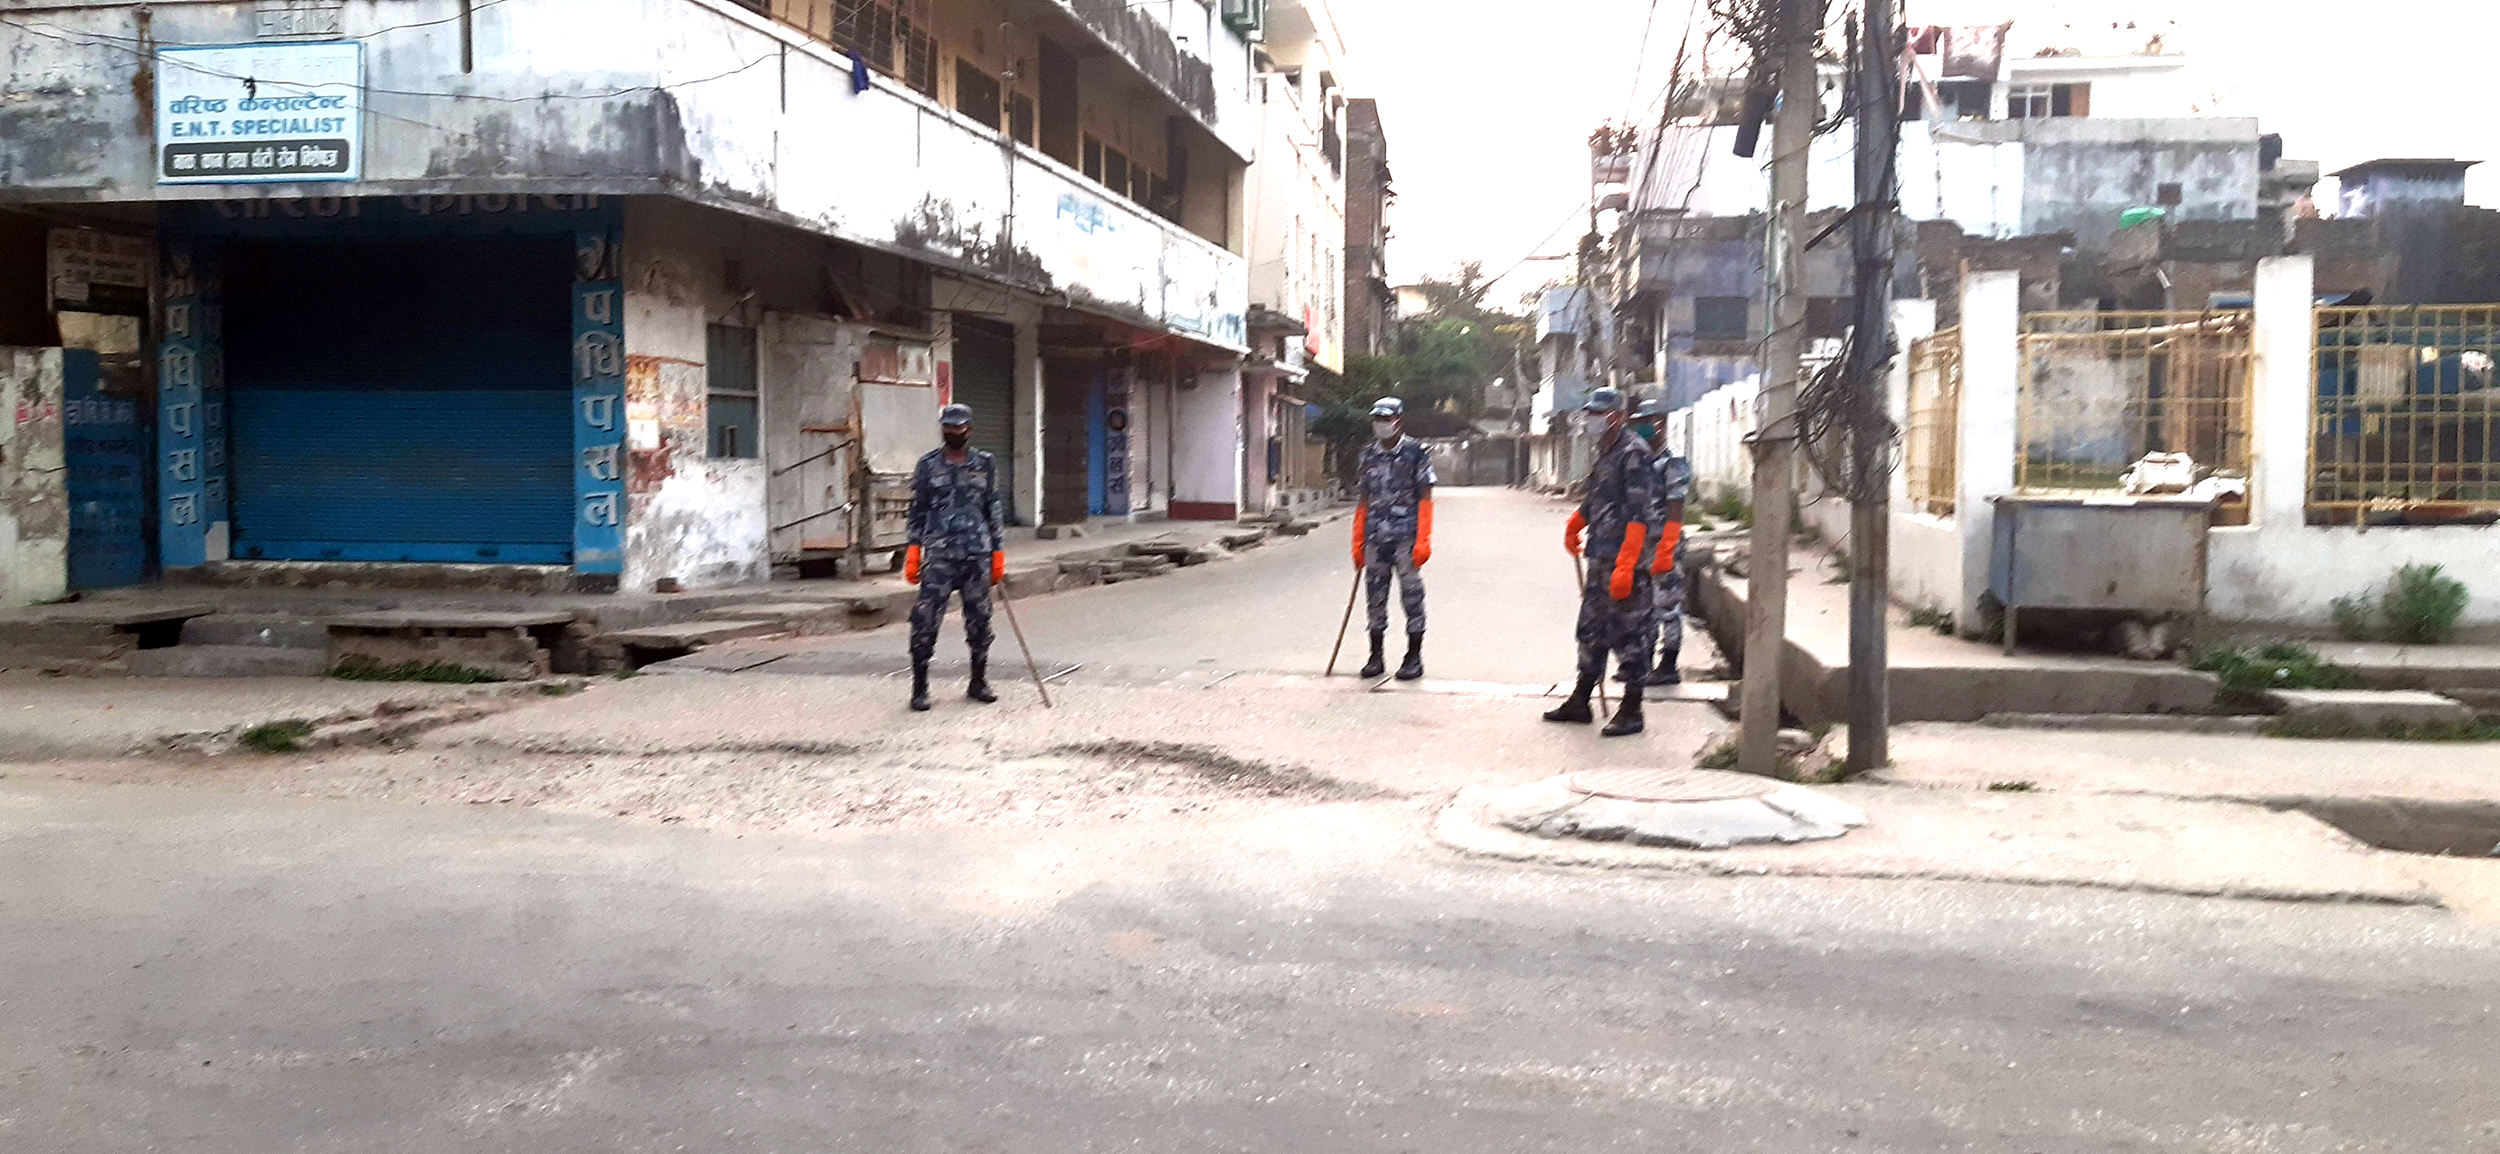 Police personnels have been deployed in the Chapkkaiya area of Birgunj Metropolitan after recent discovery of three Corona positive cases, on Sunday, April 12, 2020. Photo: Ram Sarraf/THT